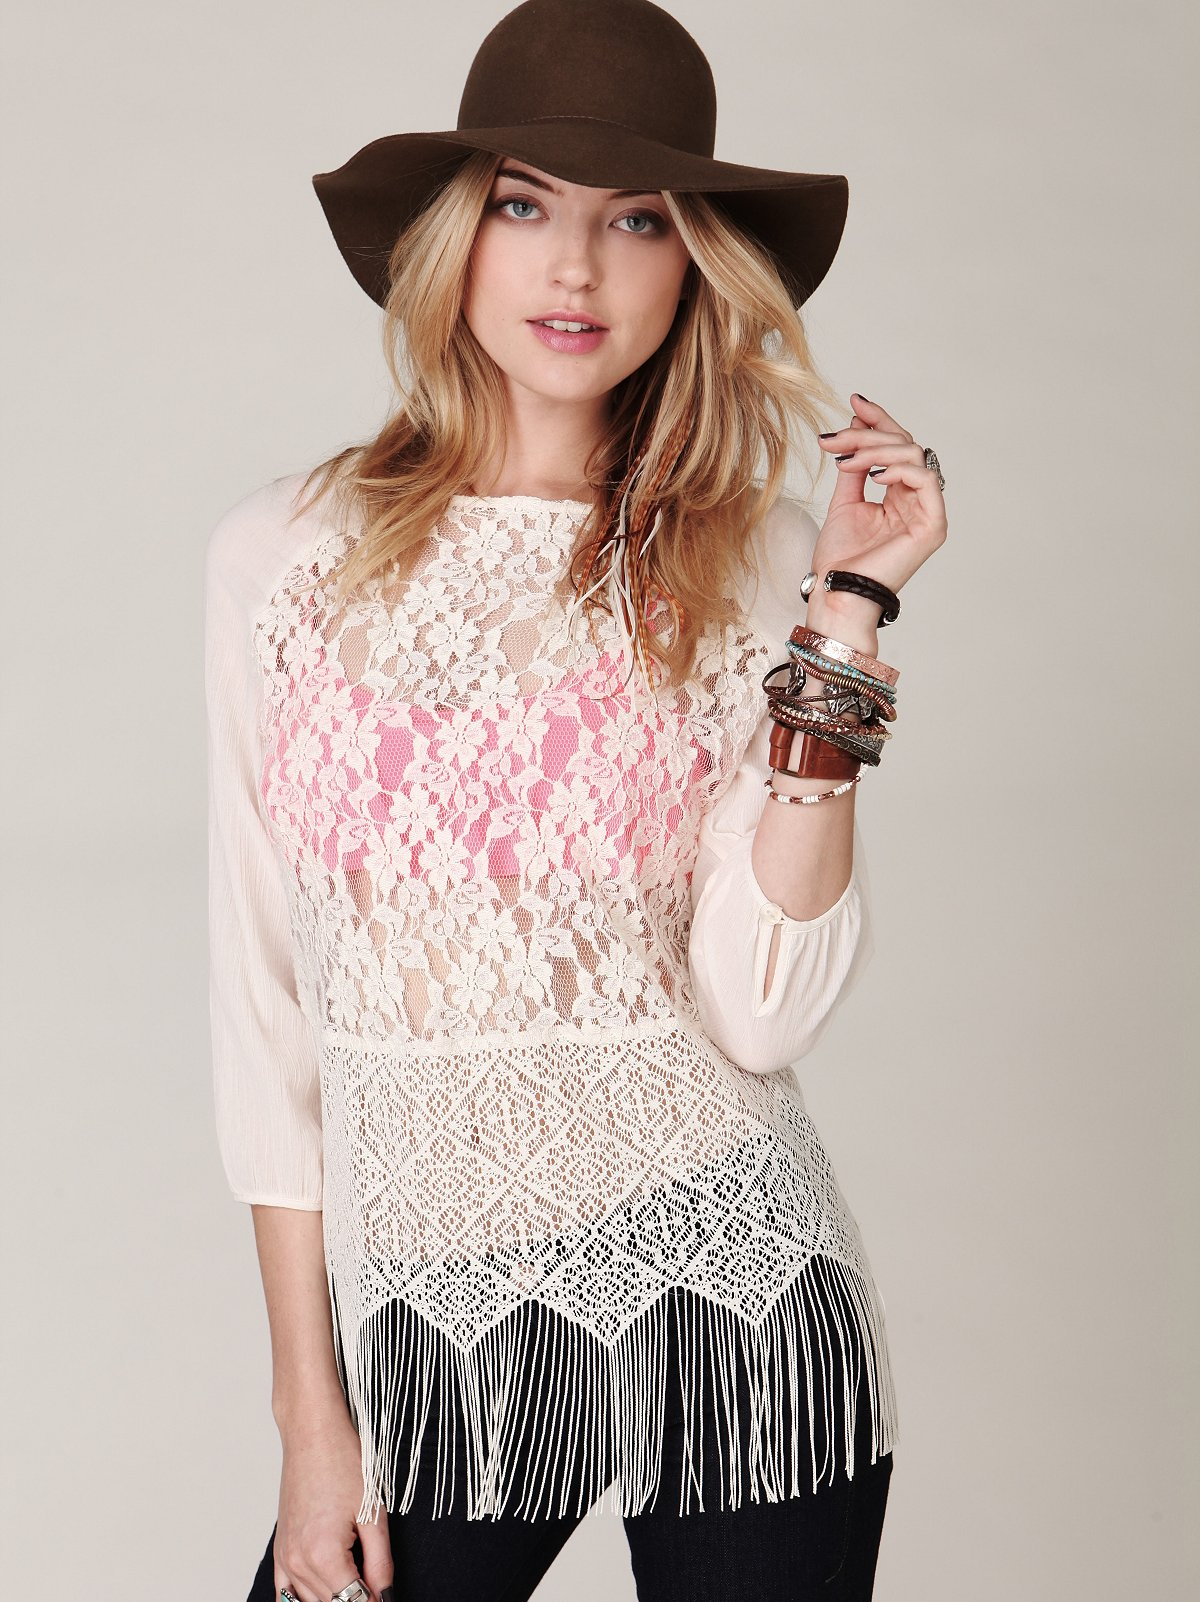 Windows of Lace Top